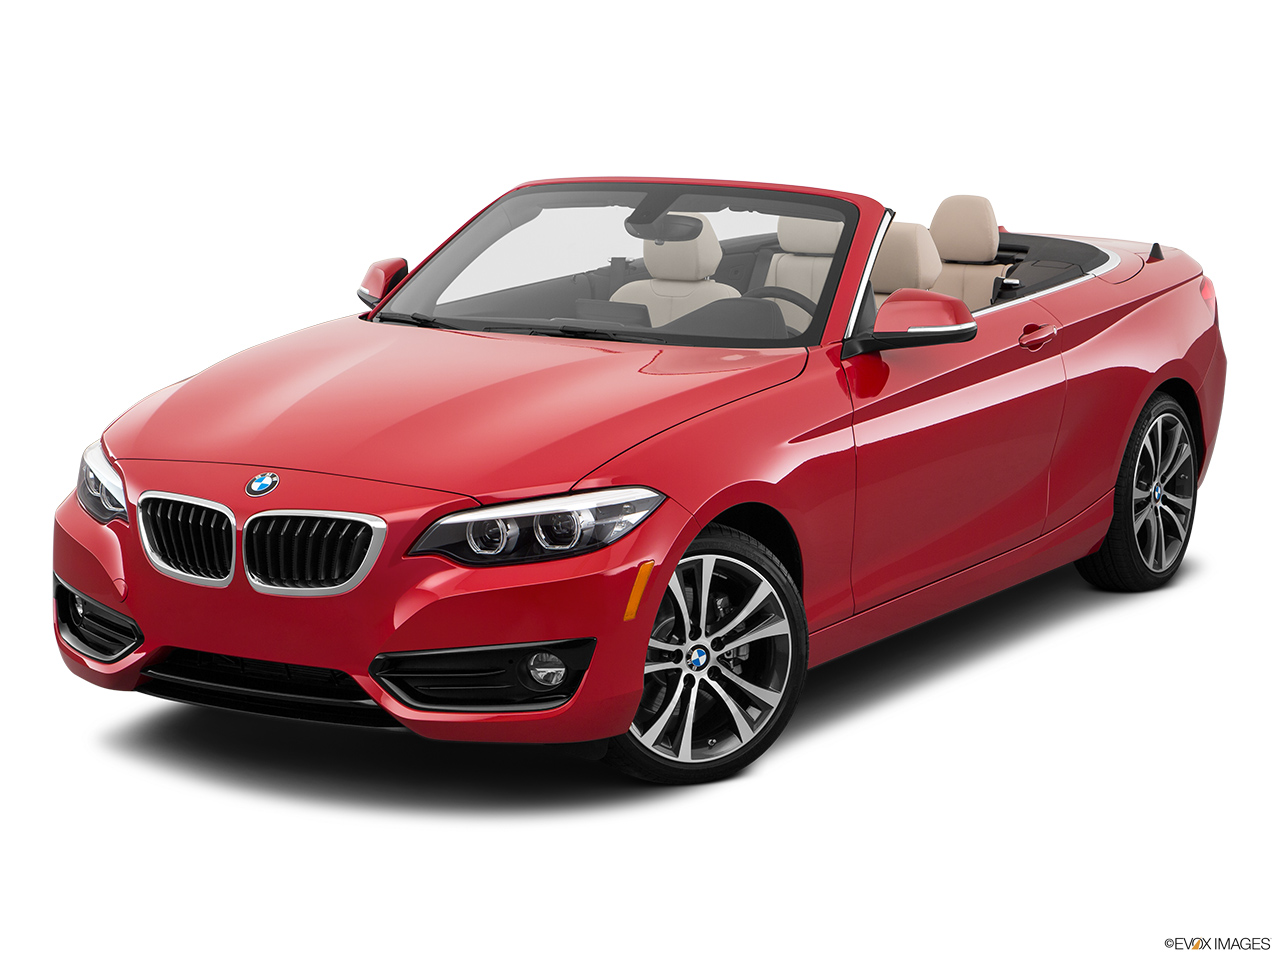 BMW 2 Series Convertible 2018, Saudi Arabia, Front angle view.